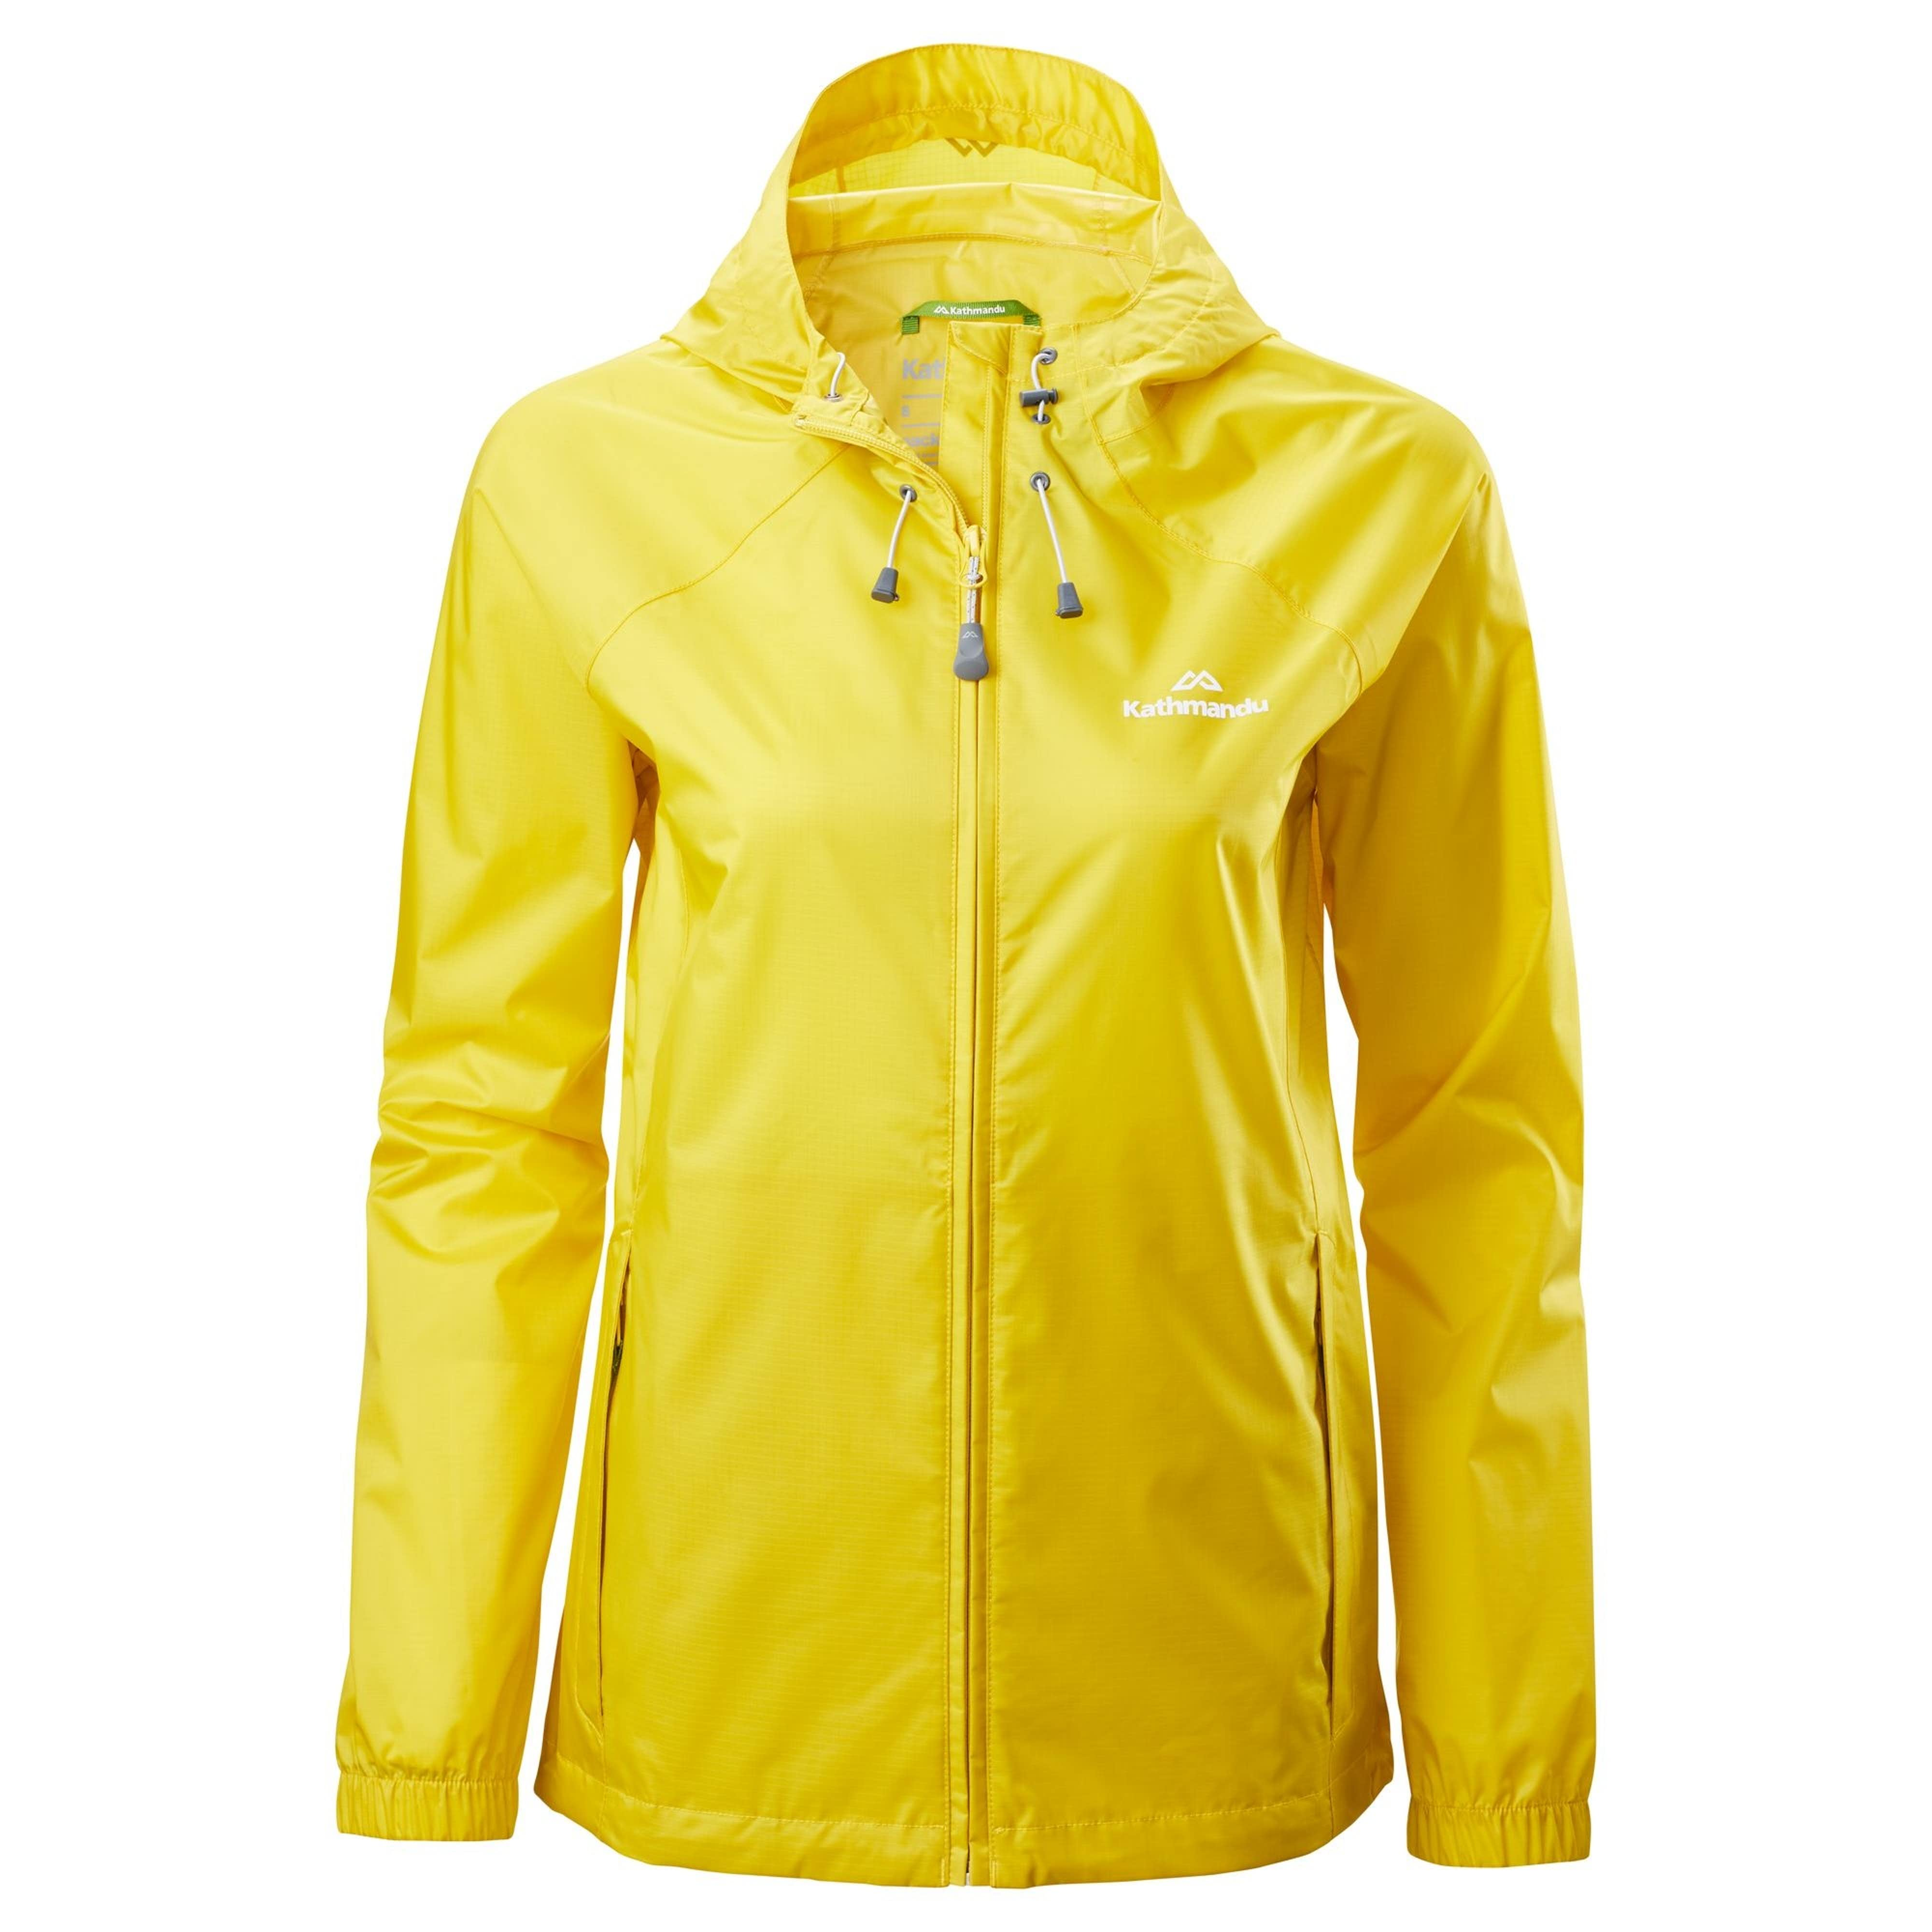 5abf0b6589 Pocket-it Women s Rain Jacket